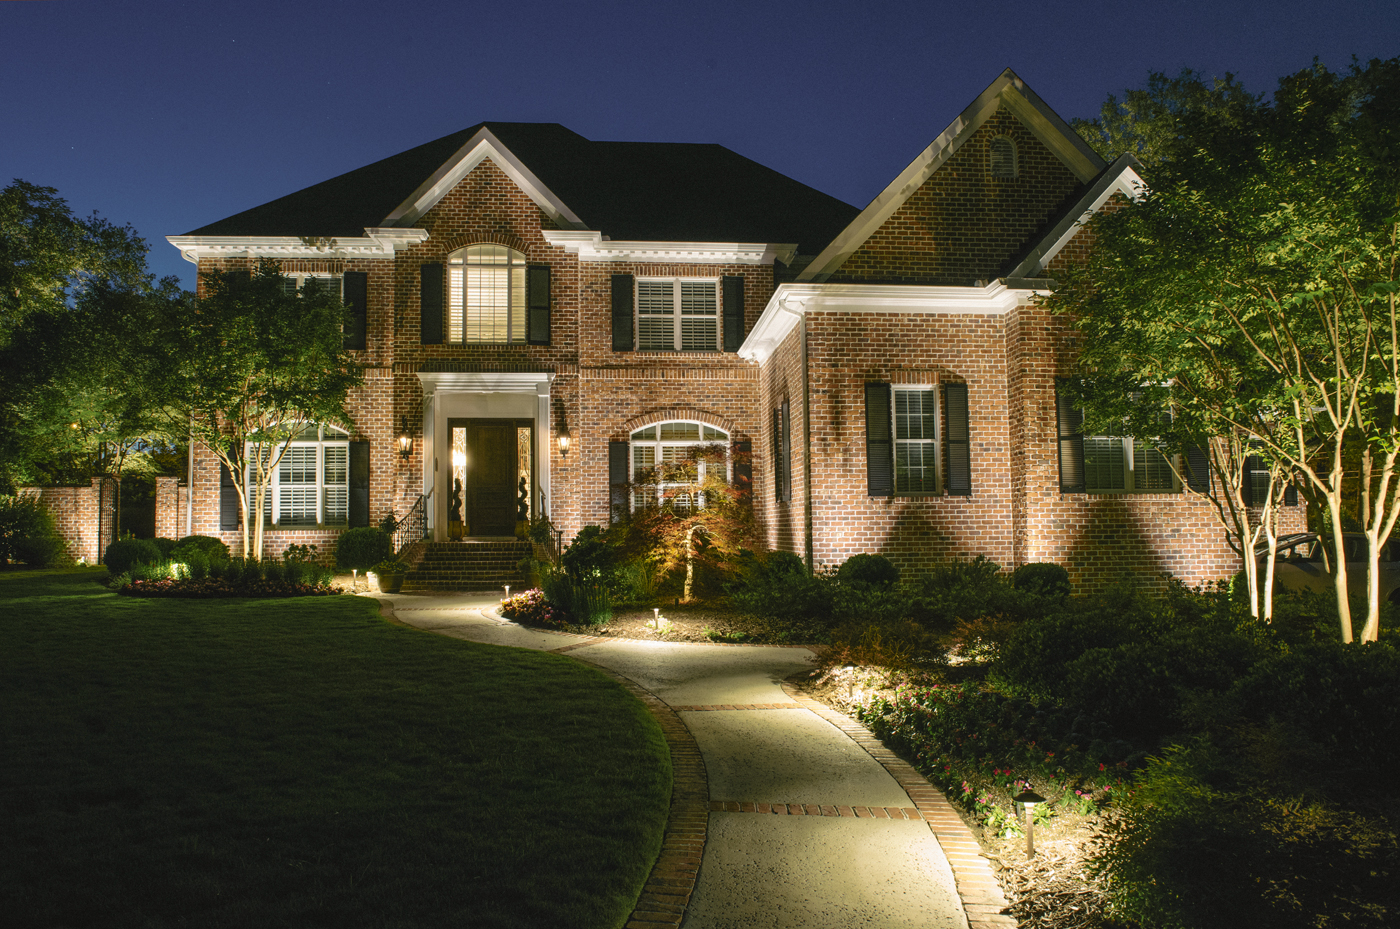 Stillwater led outdoor lighting all of our outdoor lighting and landscape lighting fixtures are led for low energy use and stunning lighting we use only copper and brass fixtures of the aloadofball Gallery